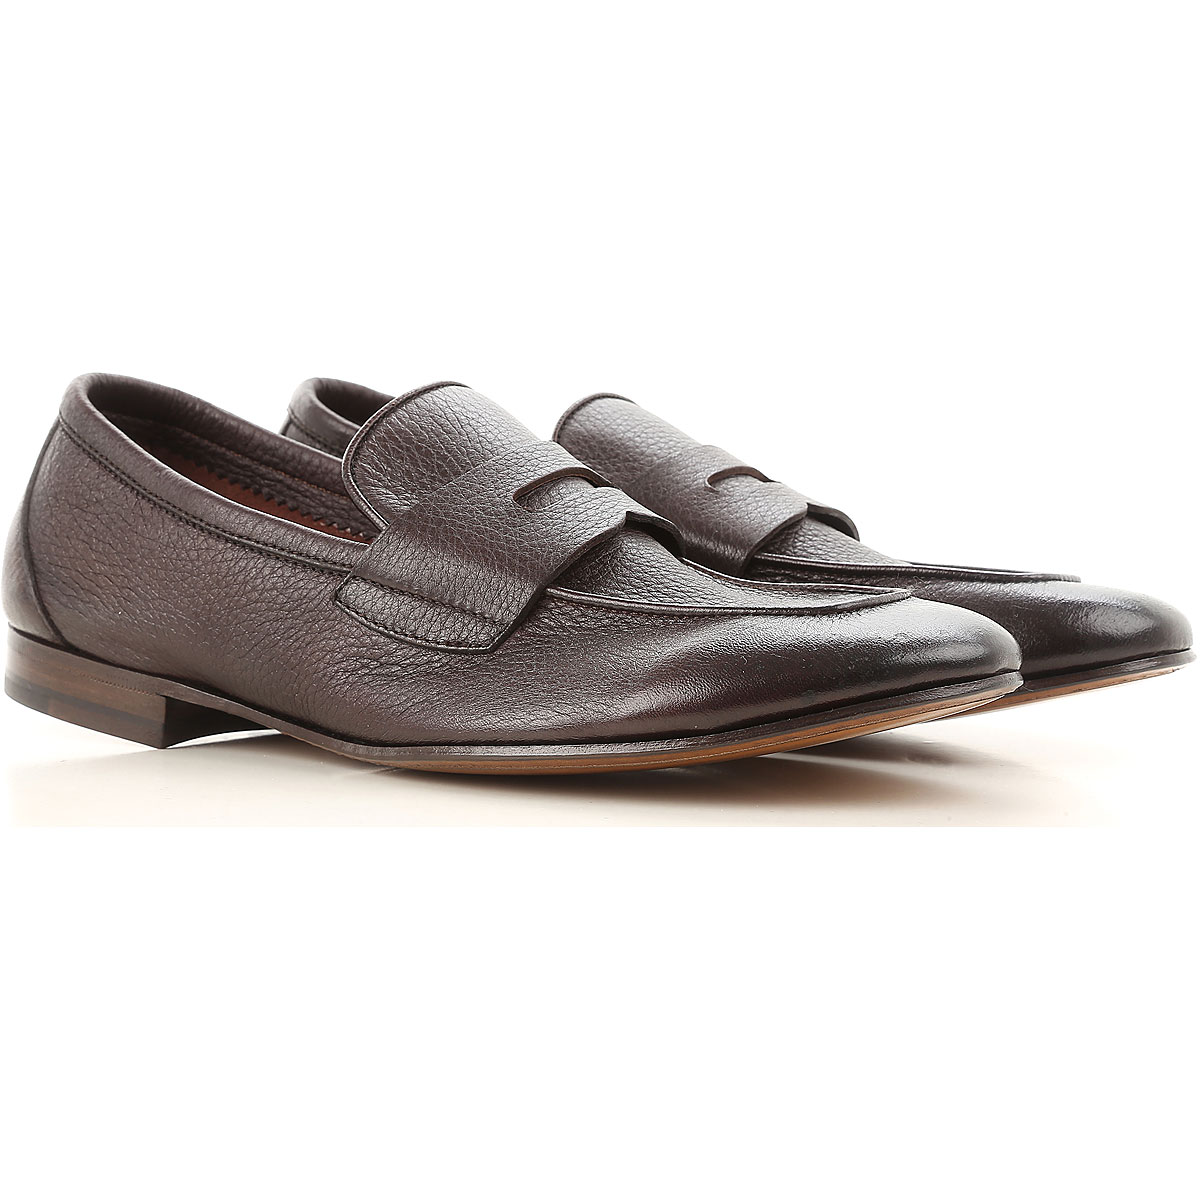 Henderson Loafers for Men On Sale, Dark Brown, Leather, 2019, 10.5 11 6 7.5 9 9.5